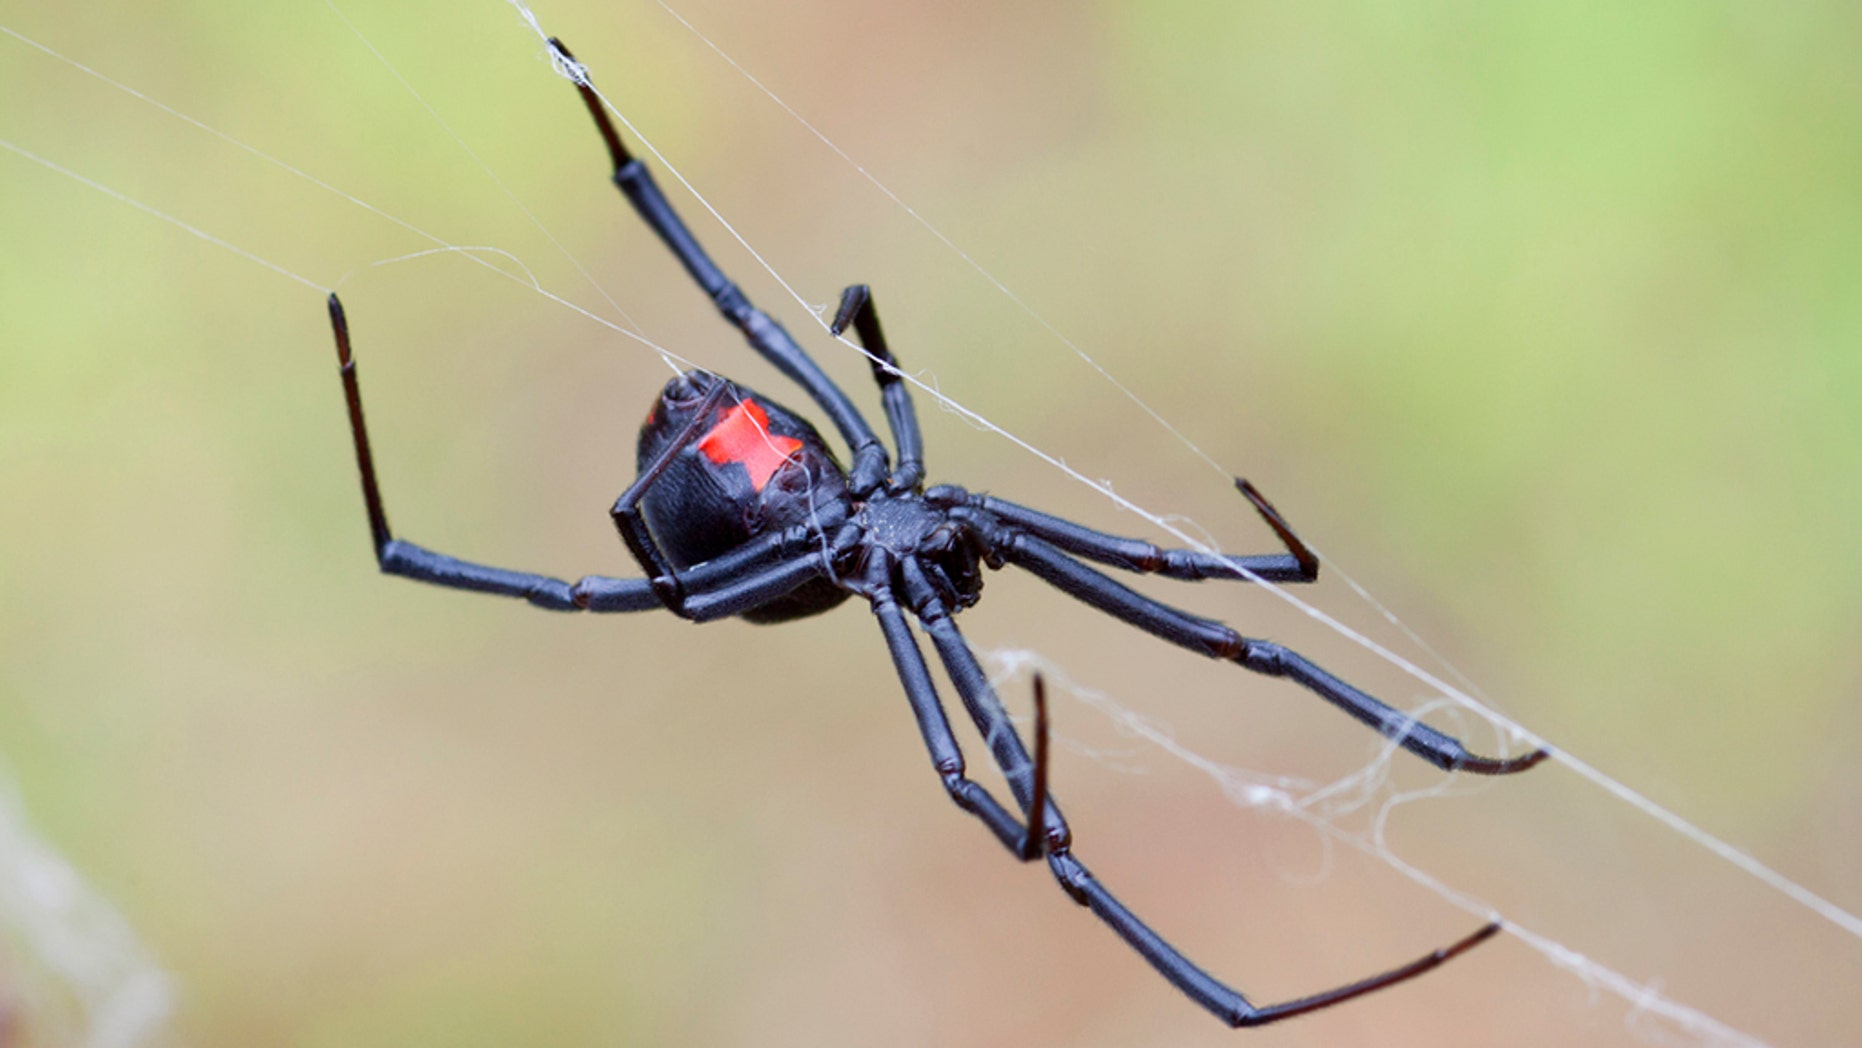 A man reportedly used a blowtorch to kill black widow spiders at his parents' home in northeast Fresno, California.